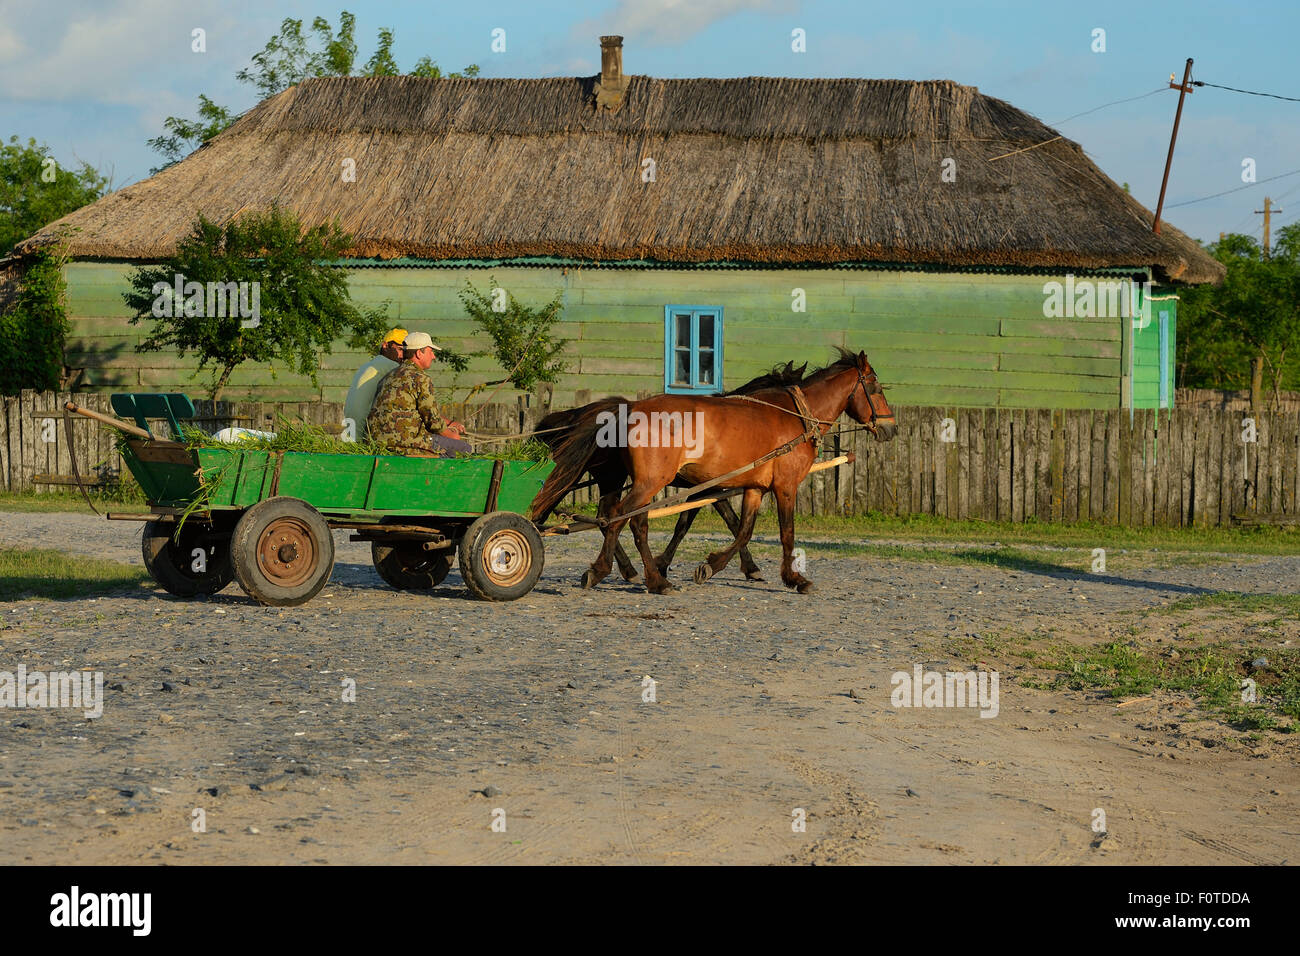 Traditional Means Of Transport Stock Photos & Traditional Means Of